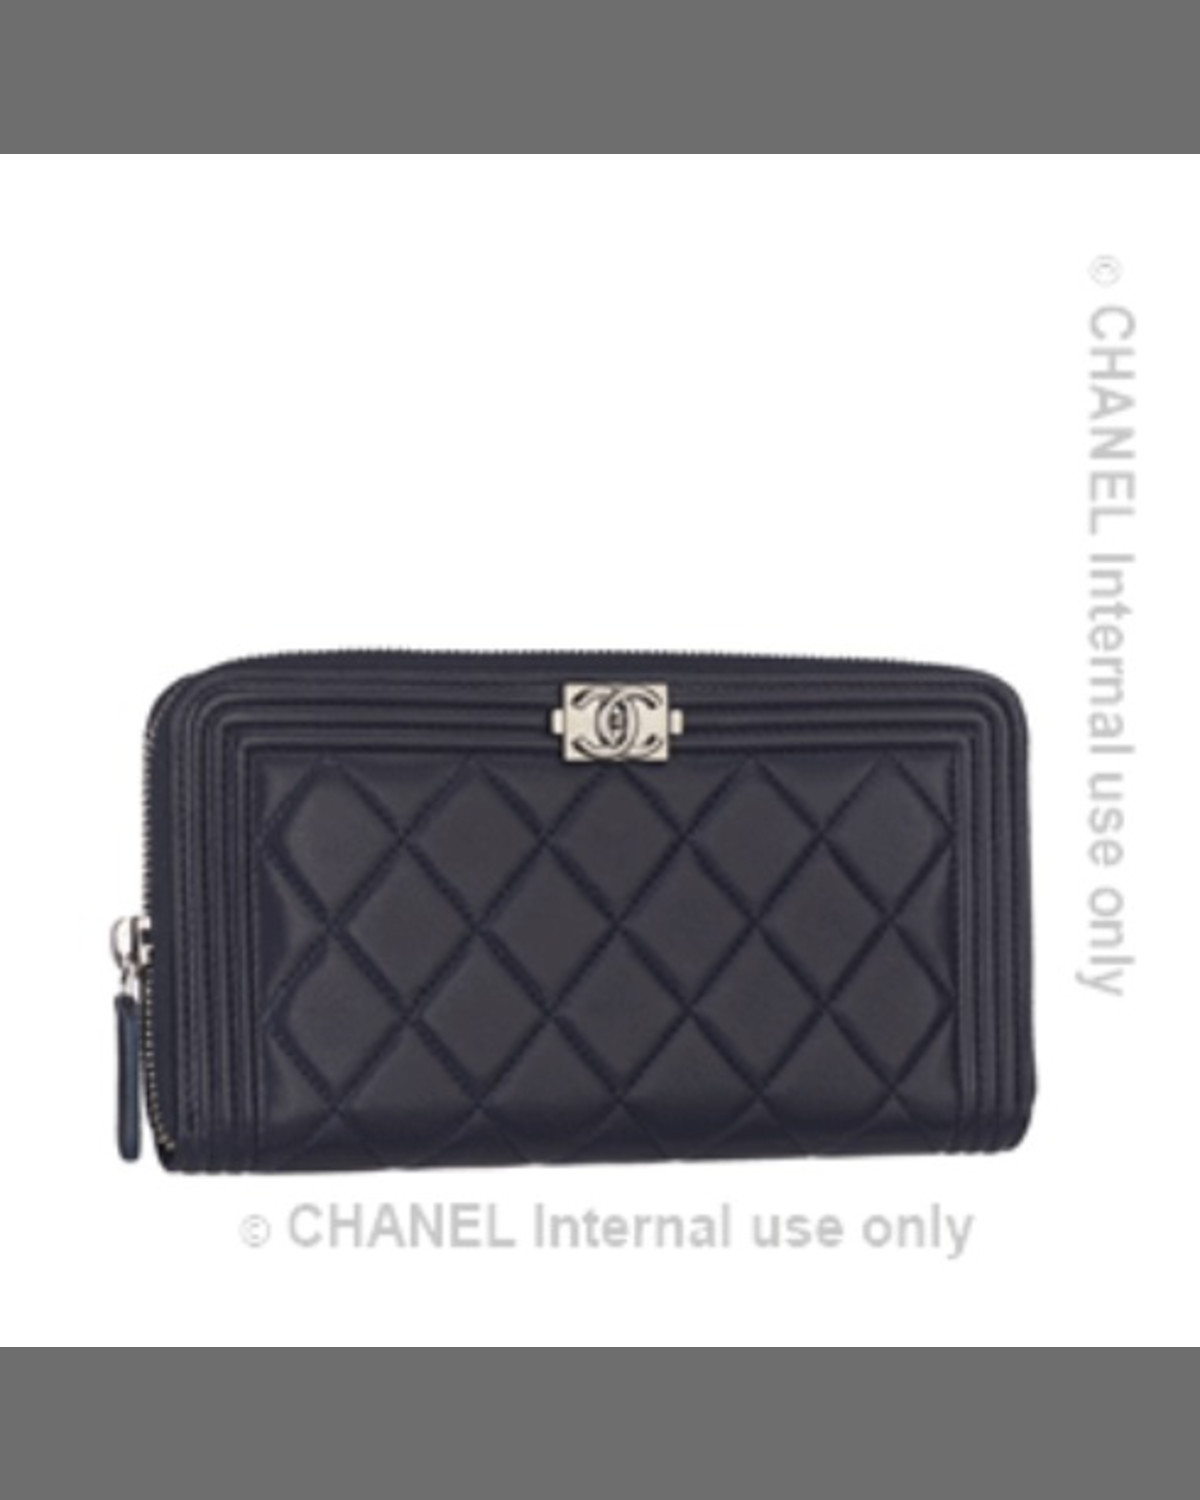 808dd5624ec73c Chanel Boy Quilted Medium Zip Around Wallet Black Neiman Marcus